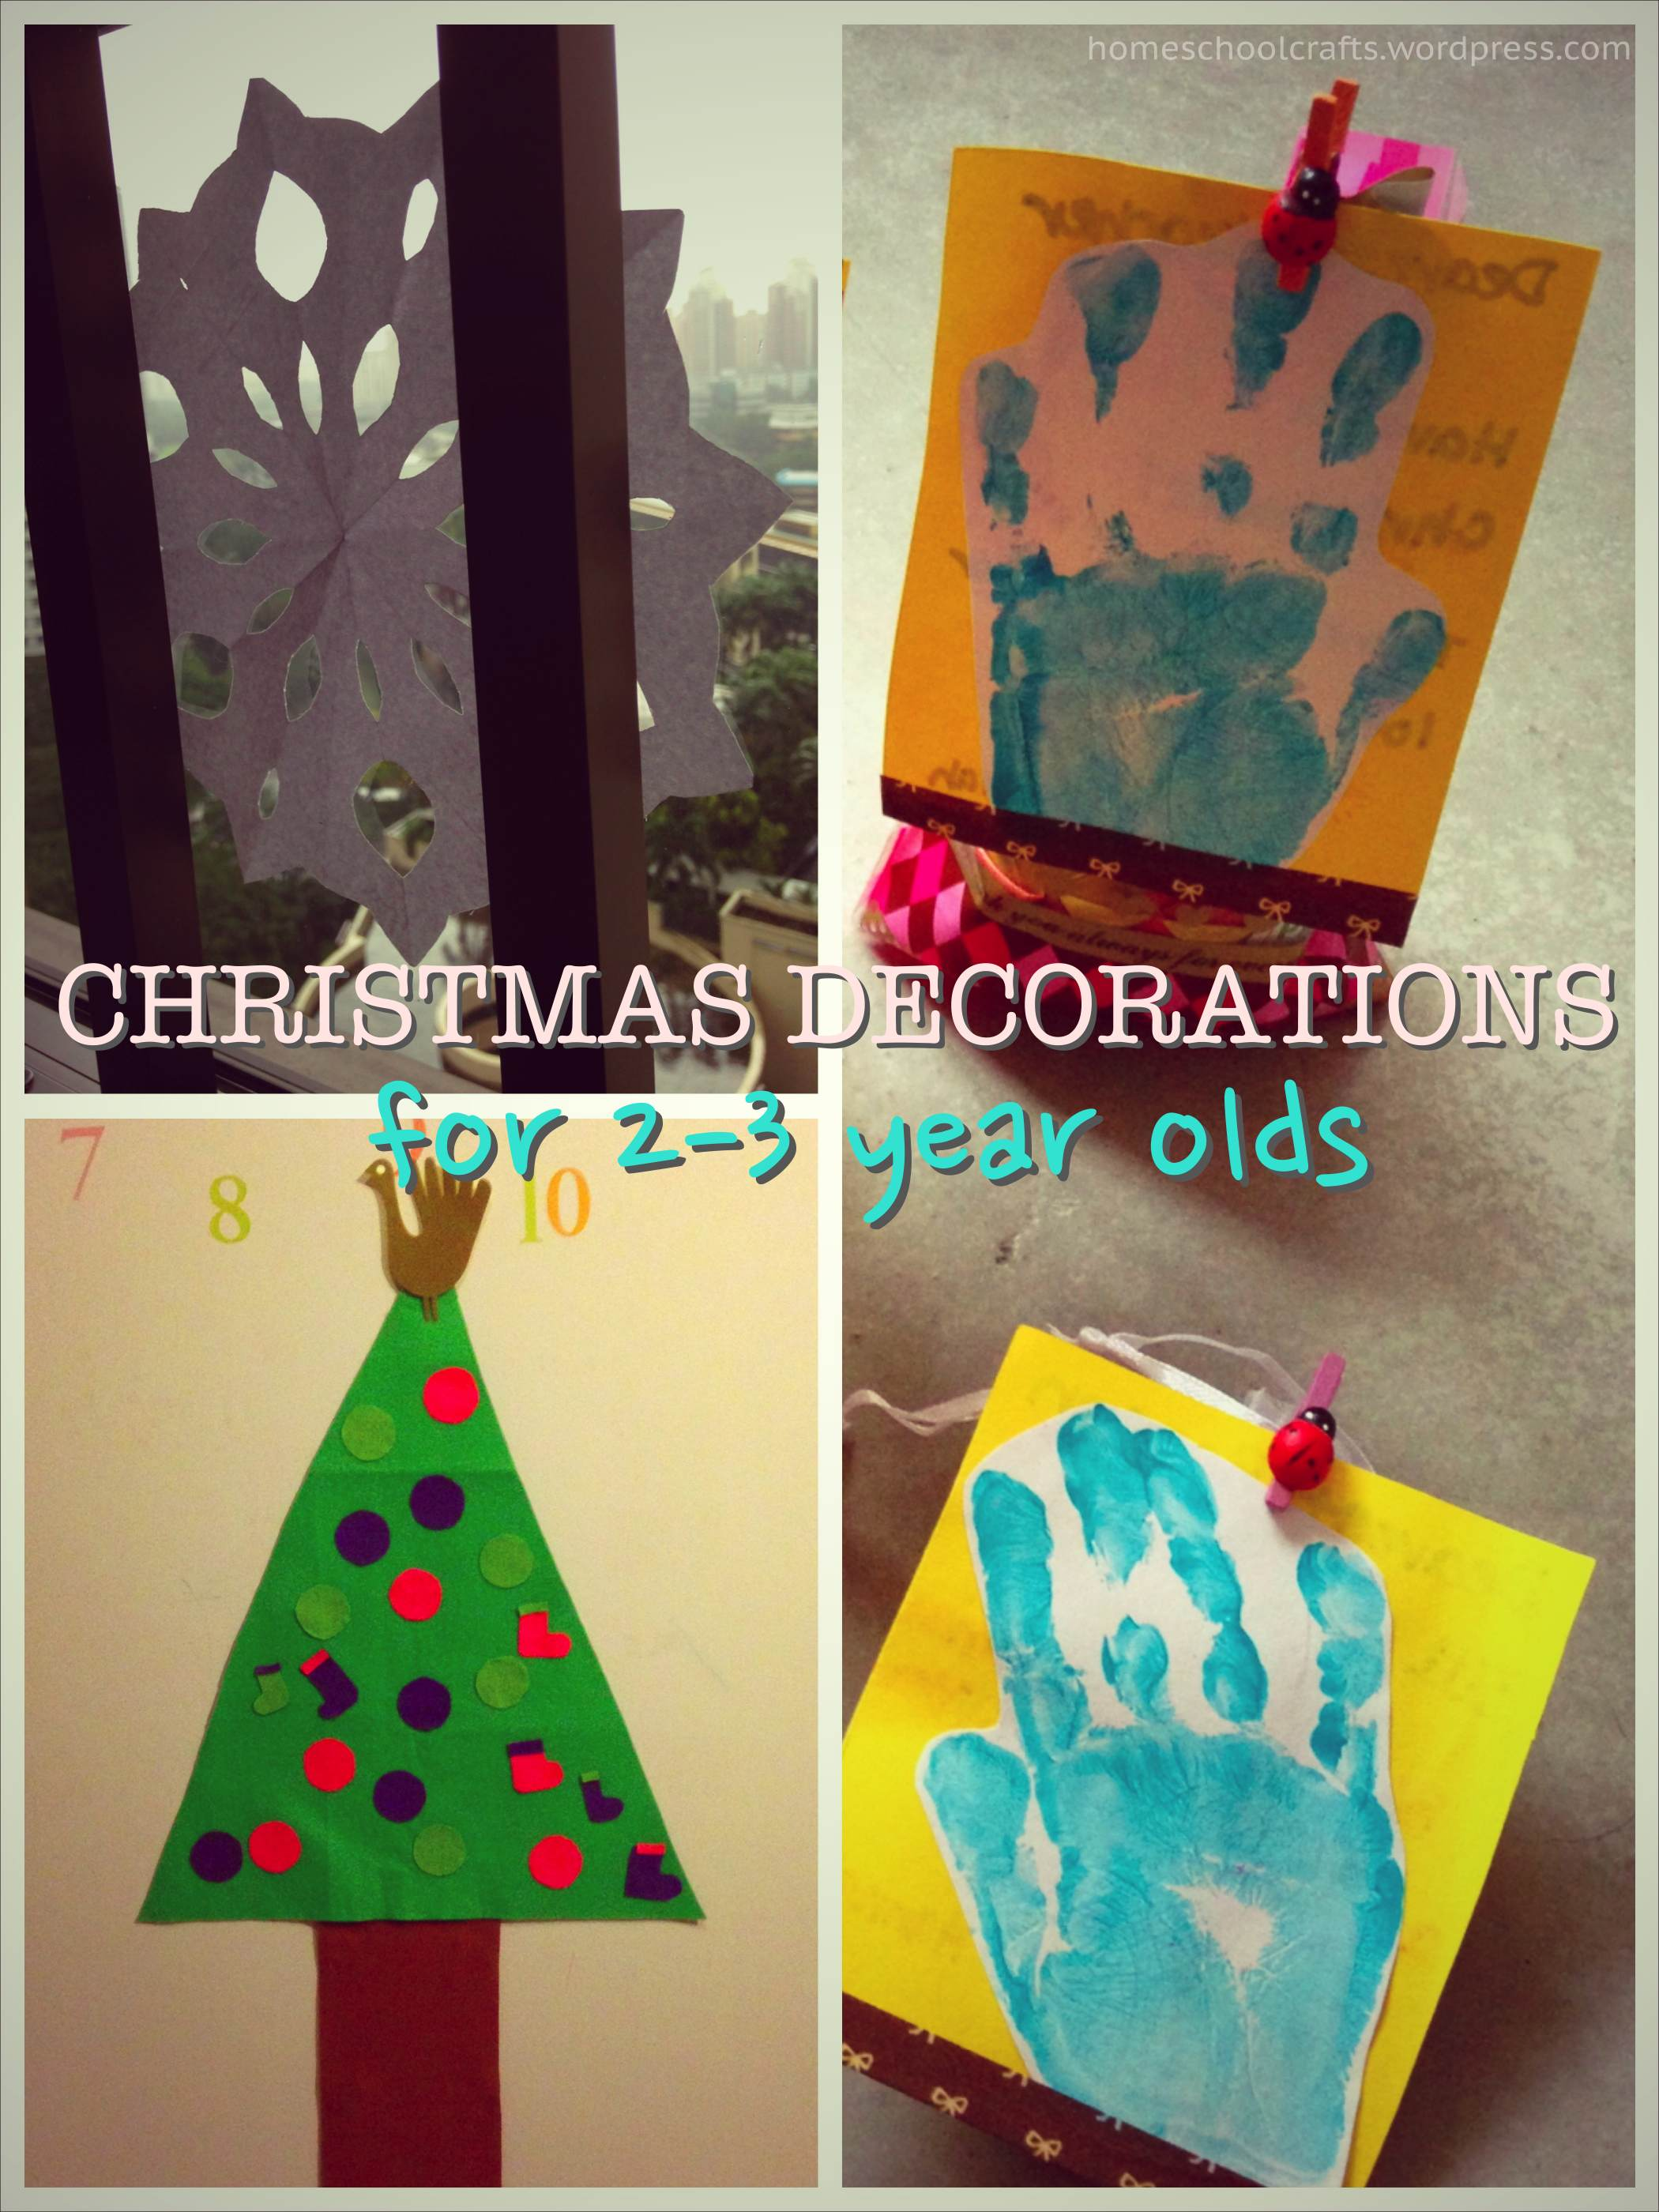 Diy Christmas Decor For School : Our last minute diy christmas decorations homeschool crafts